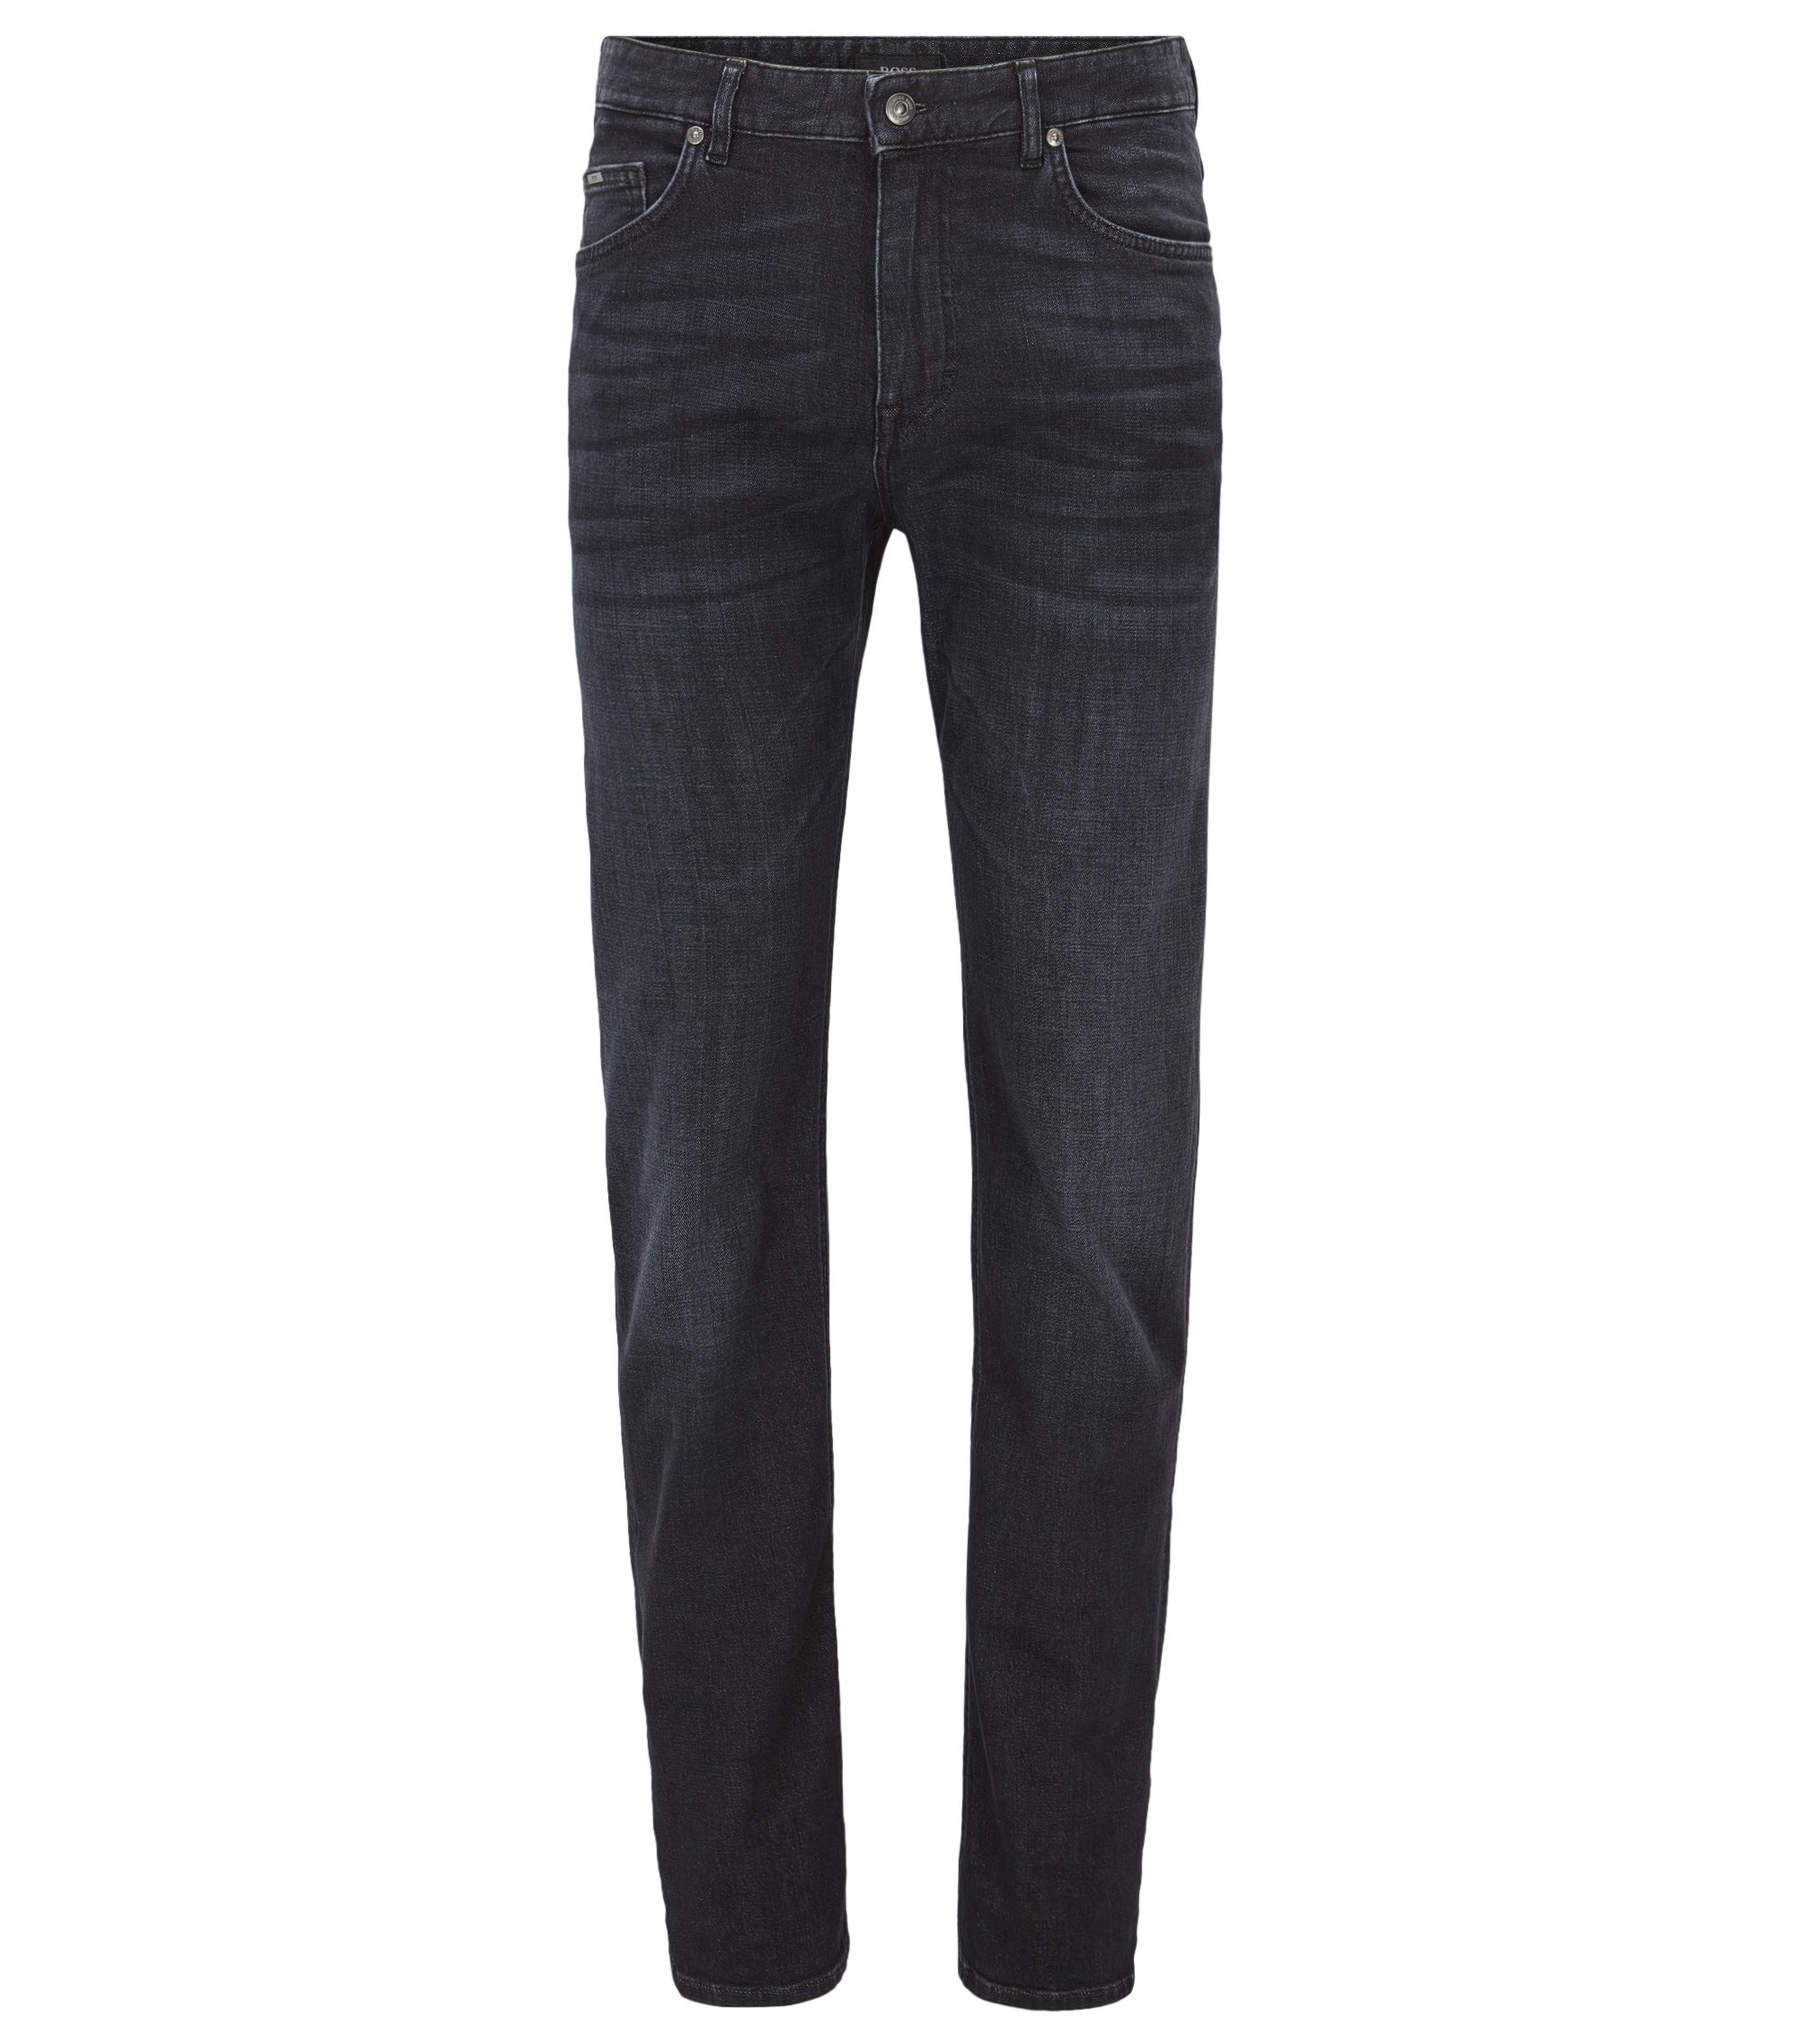 10 oz Stretch Cotton Jeans, Relaxed Fit | Albany, Charcoal